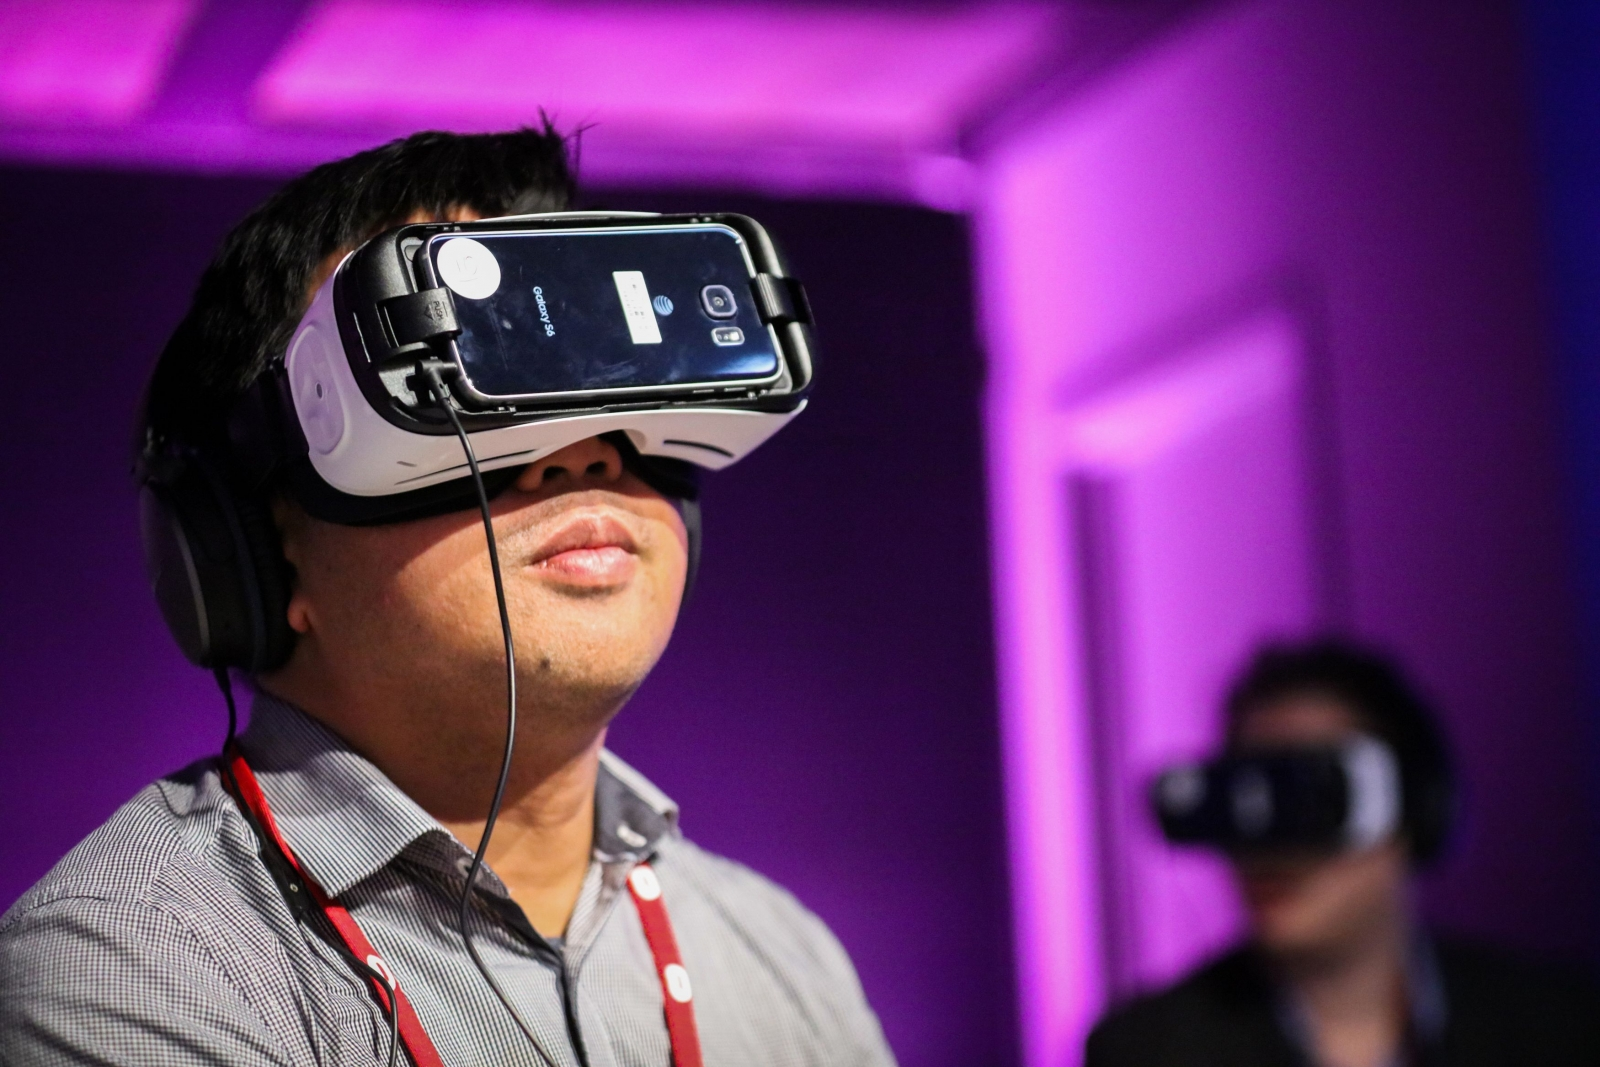 Could virtual reality offer those worried about terror another way to be attend a mass event?